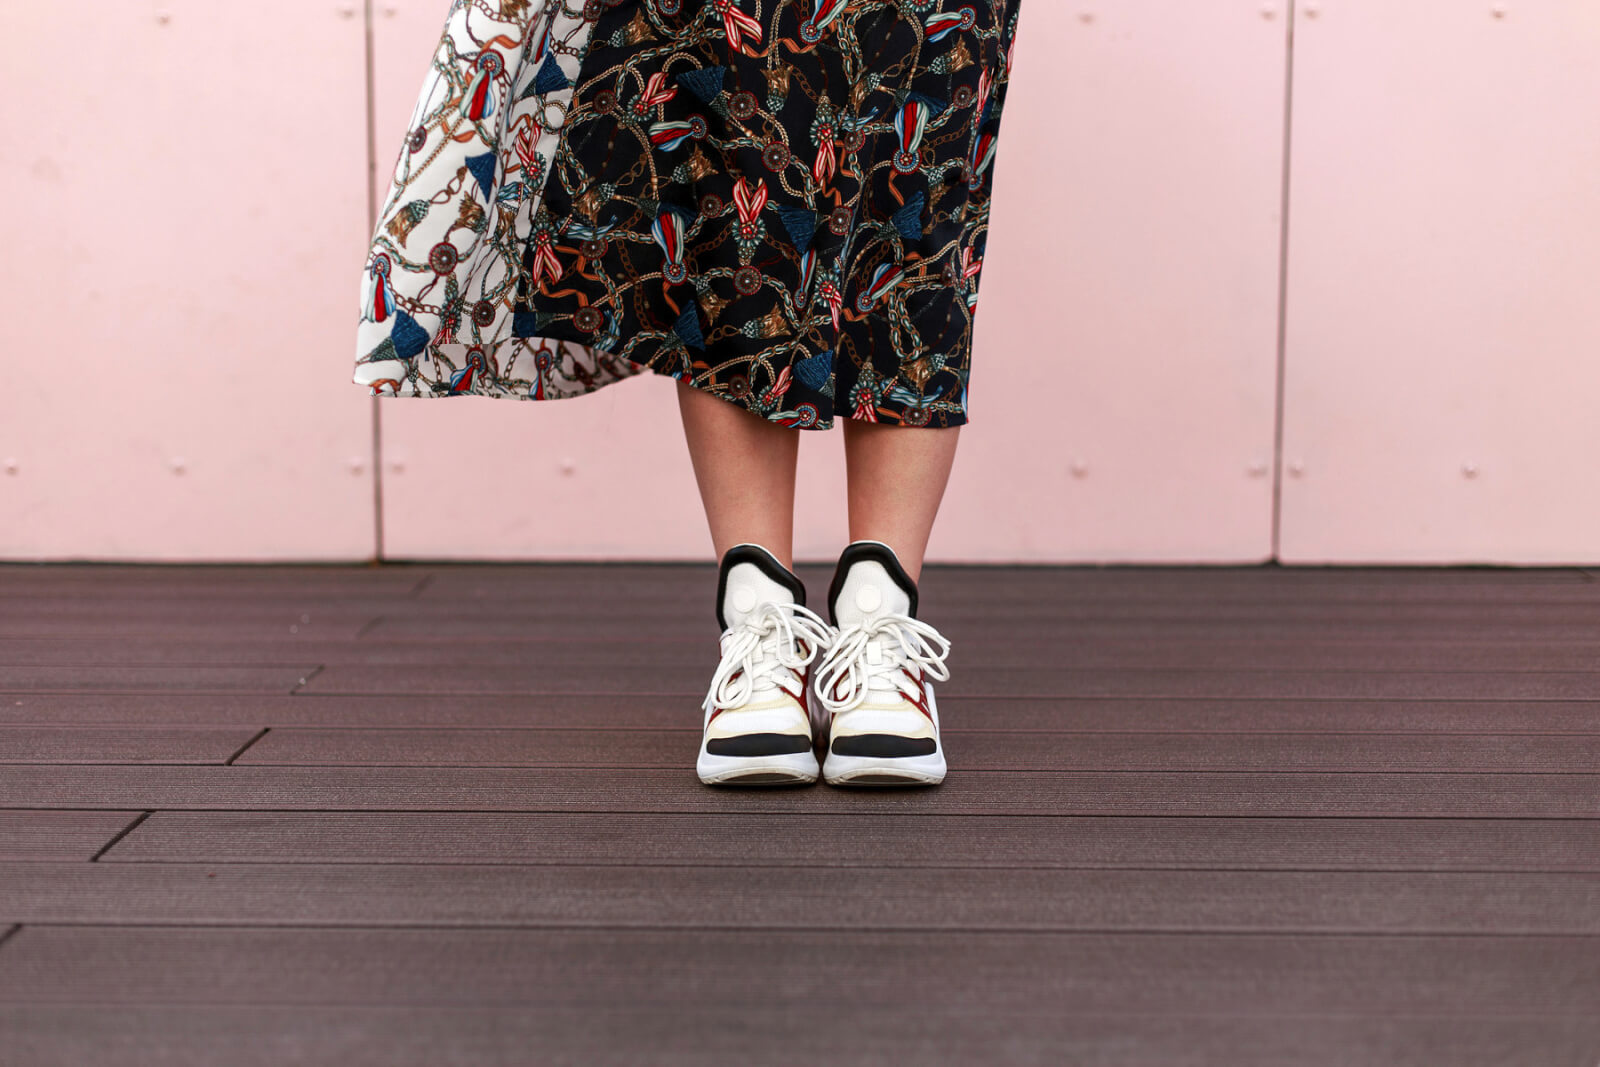 How to Wear Sneakers and Look Fashionable, Not Frumpy